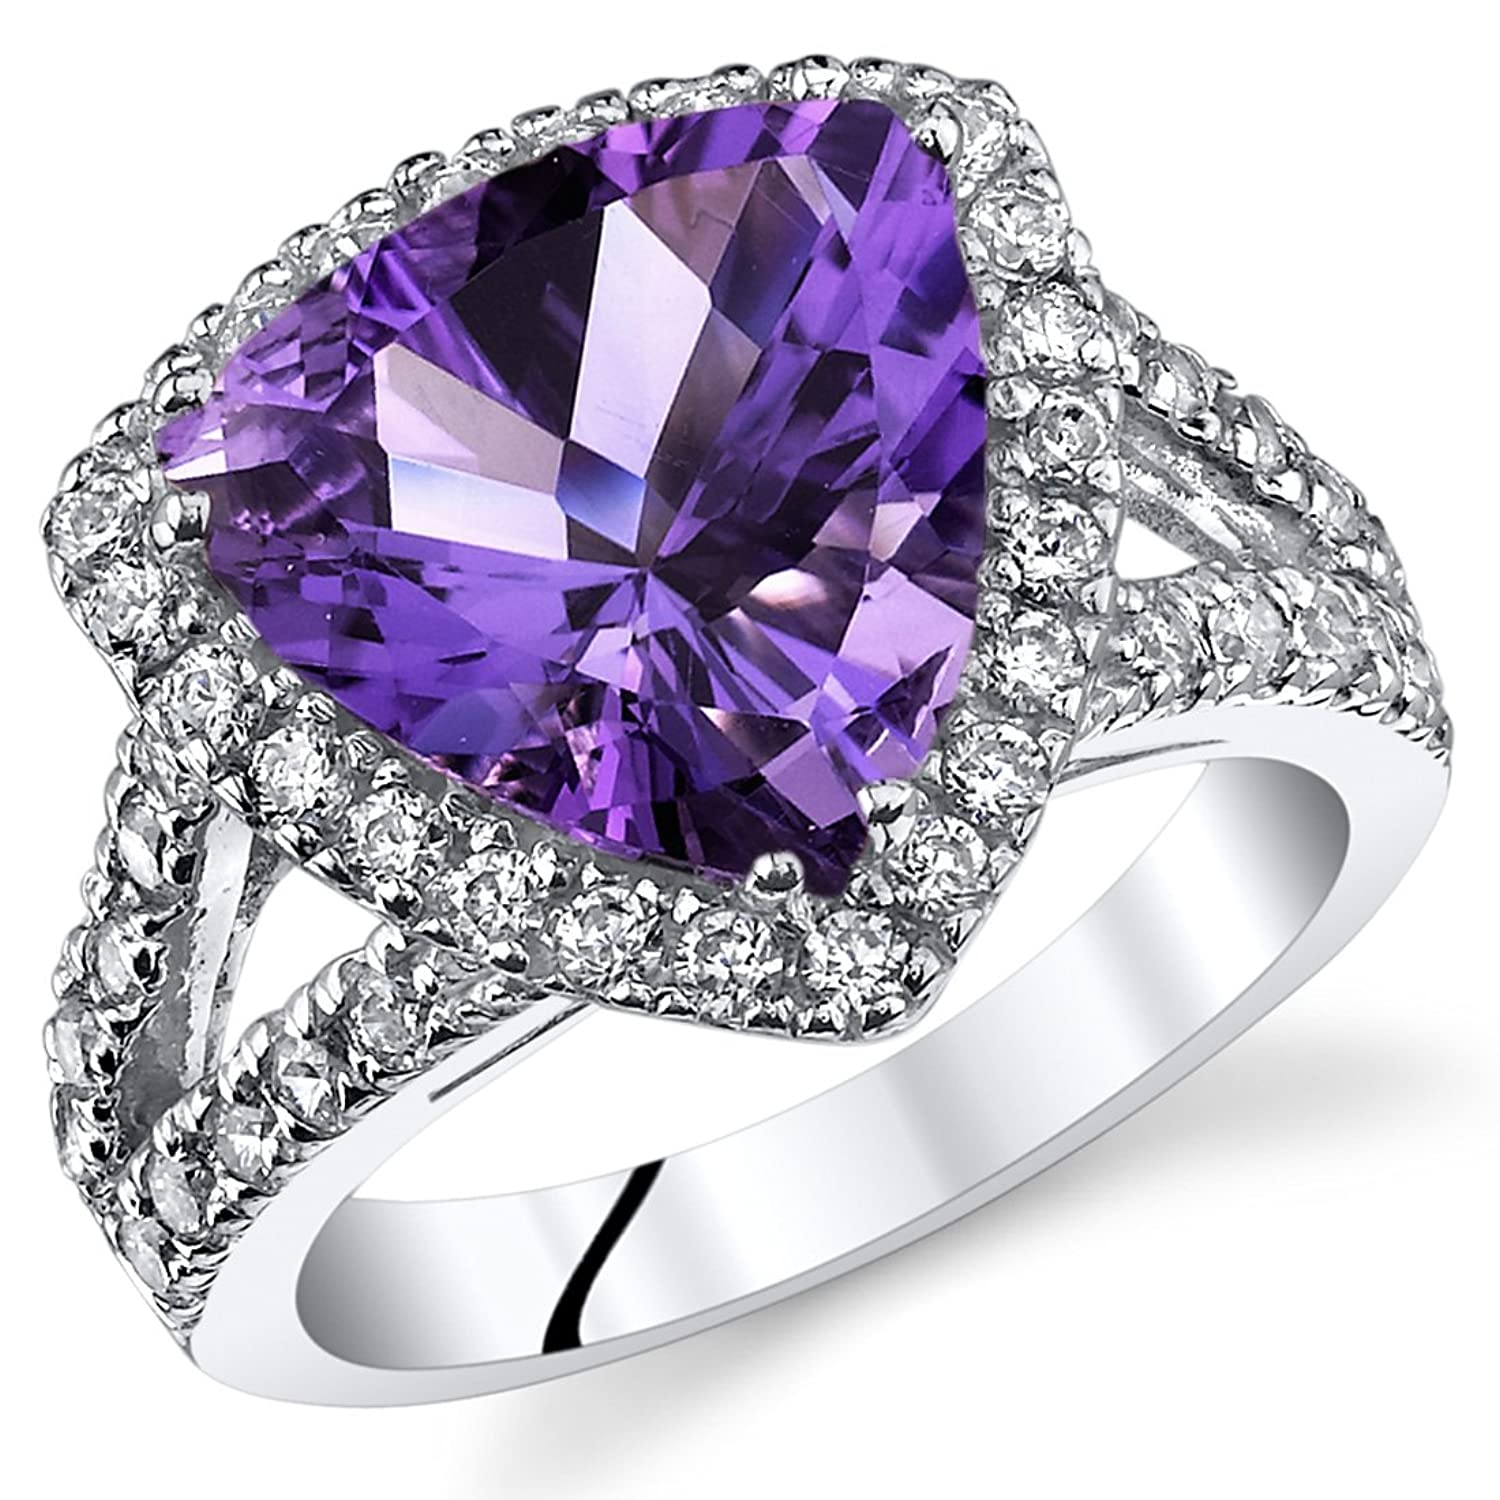 ring sterling natural pillows fine amethyst in from lamoon anillos rings item cut women square purple engagement silver jewelry